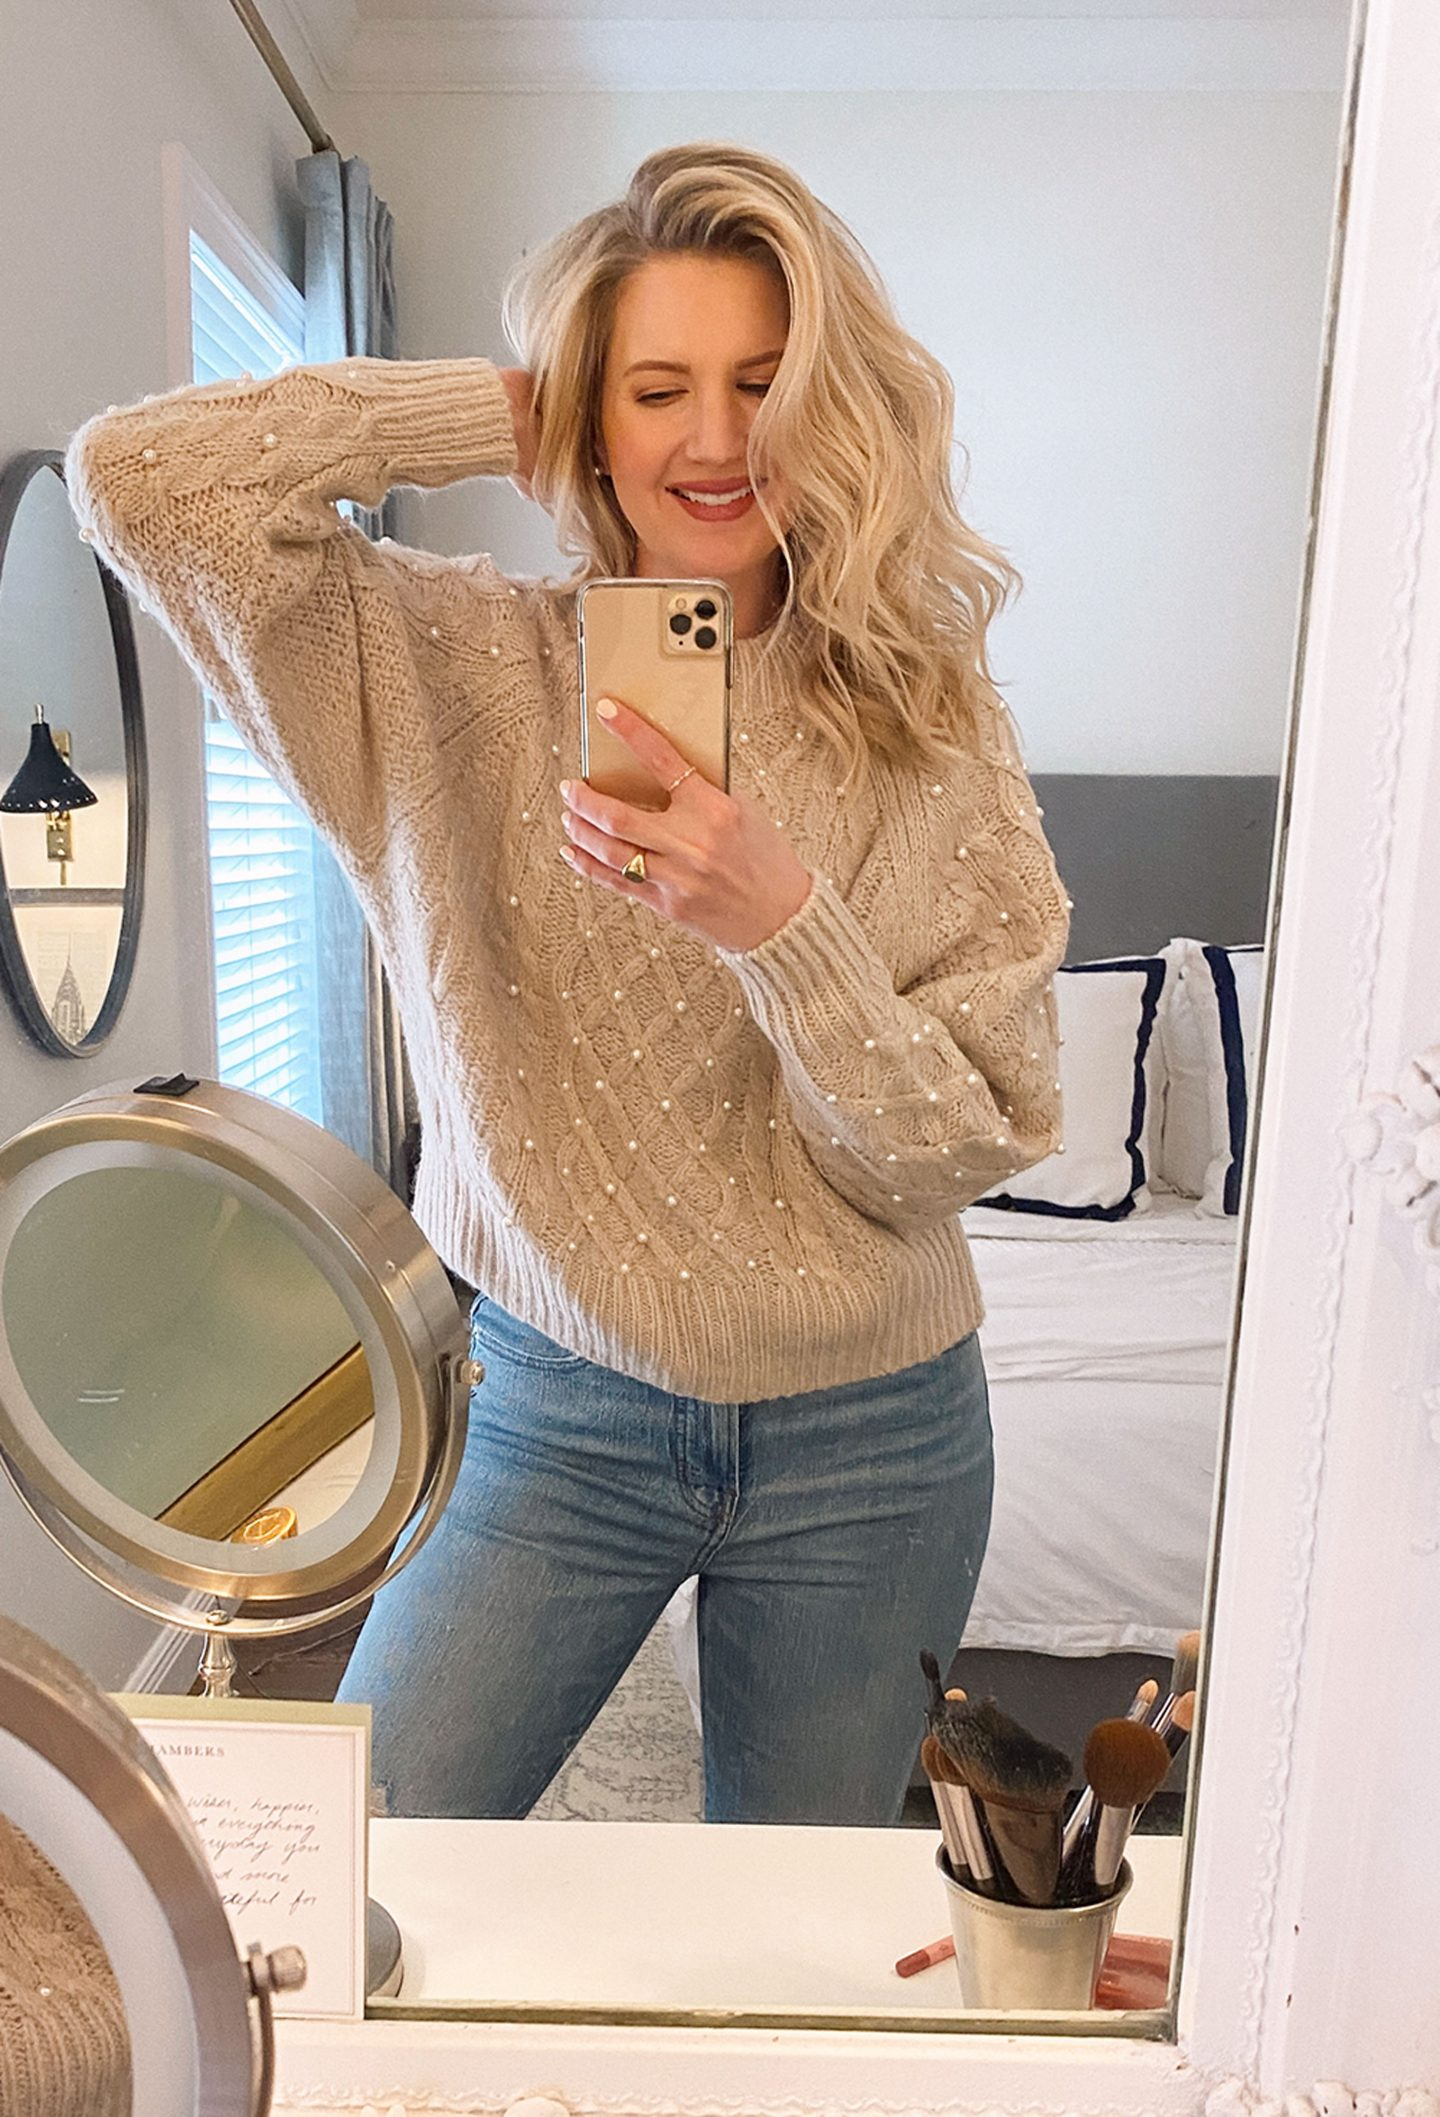 Ashley Brooke selfie in mirror and talking about her hair styling routine